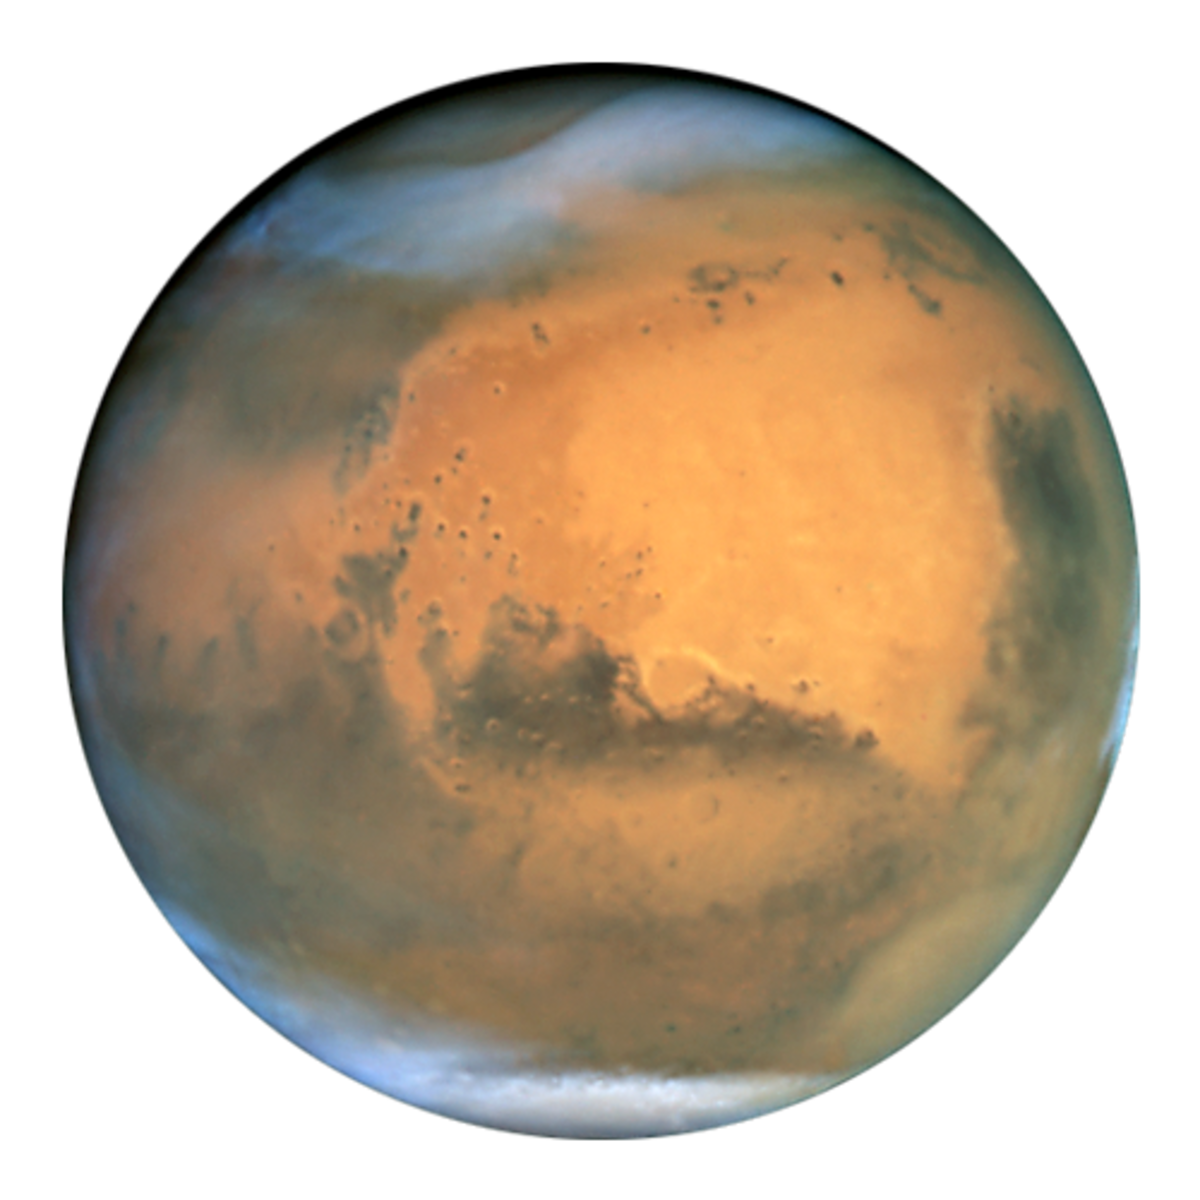 Terraforming Mars Pc Game: How To Walk On Mars With Google Street View